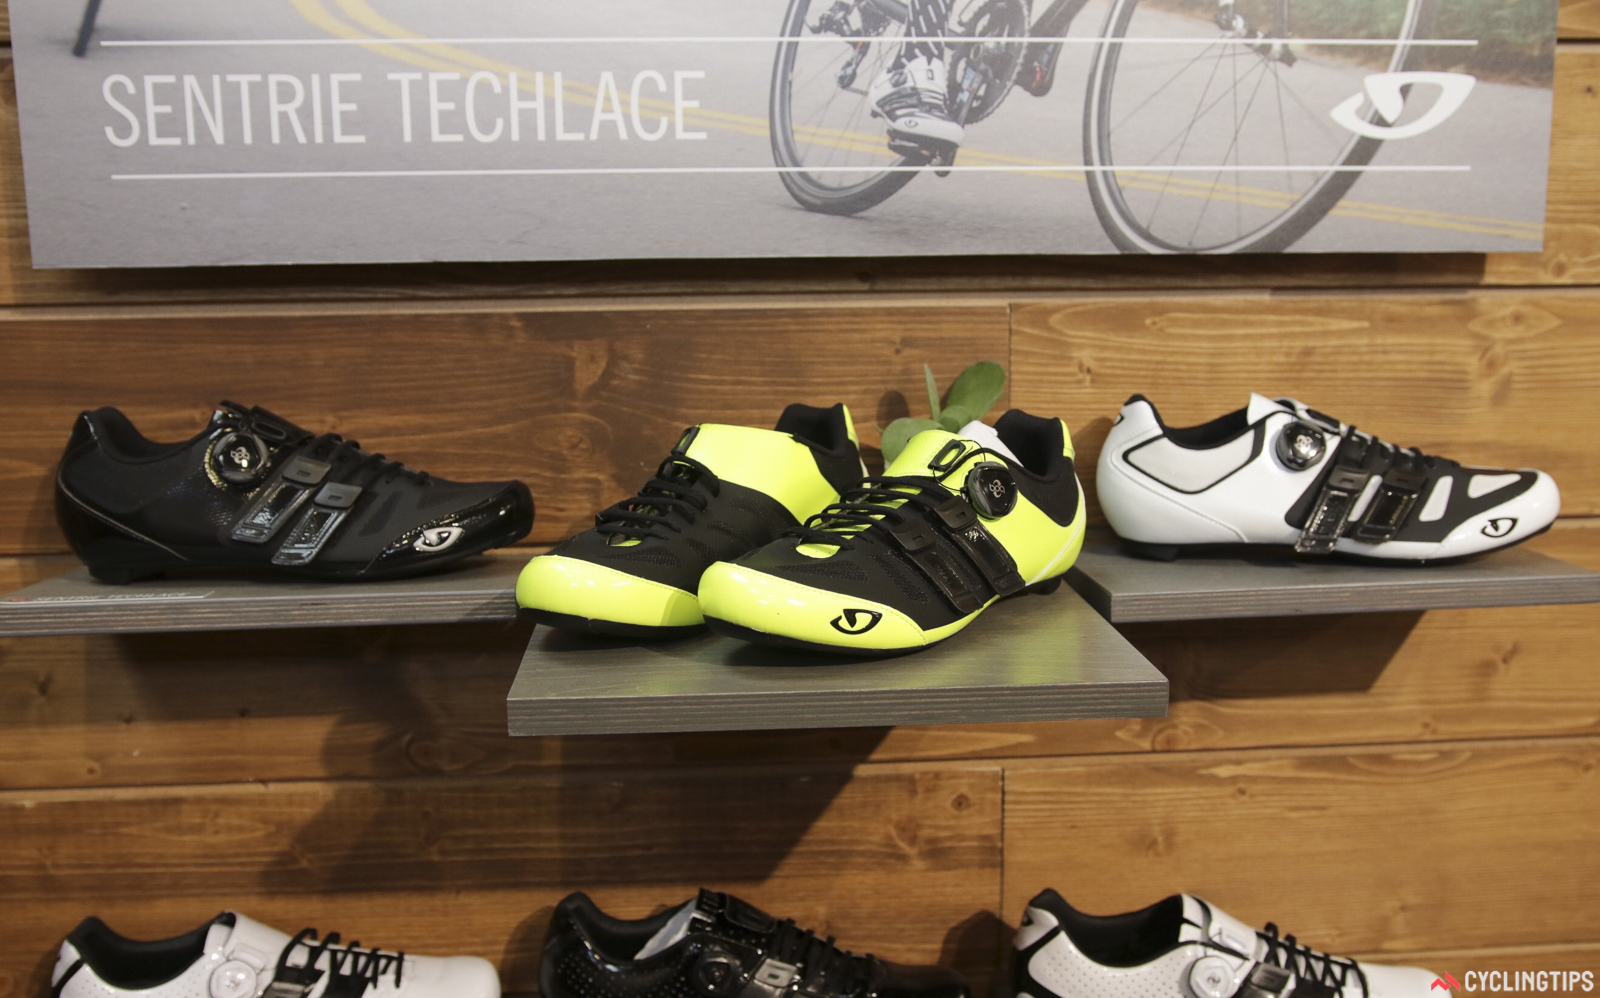 The Giro Sentrie TechLace come in three colour options too. Photo: David Rome.